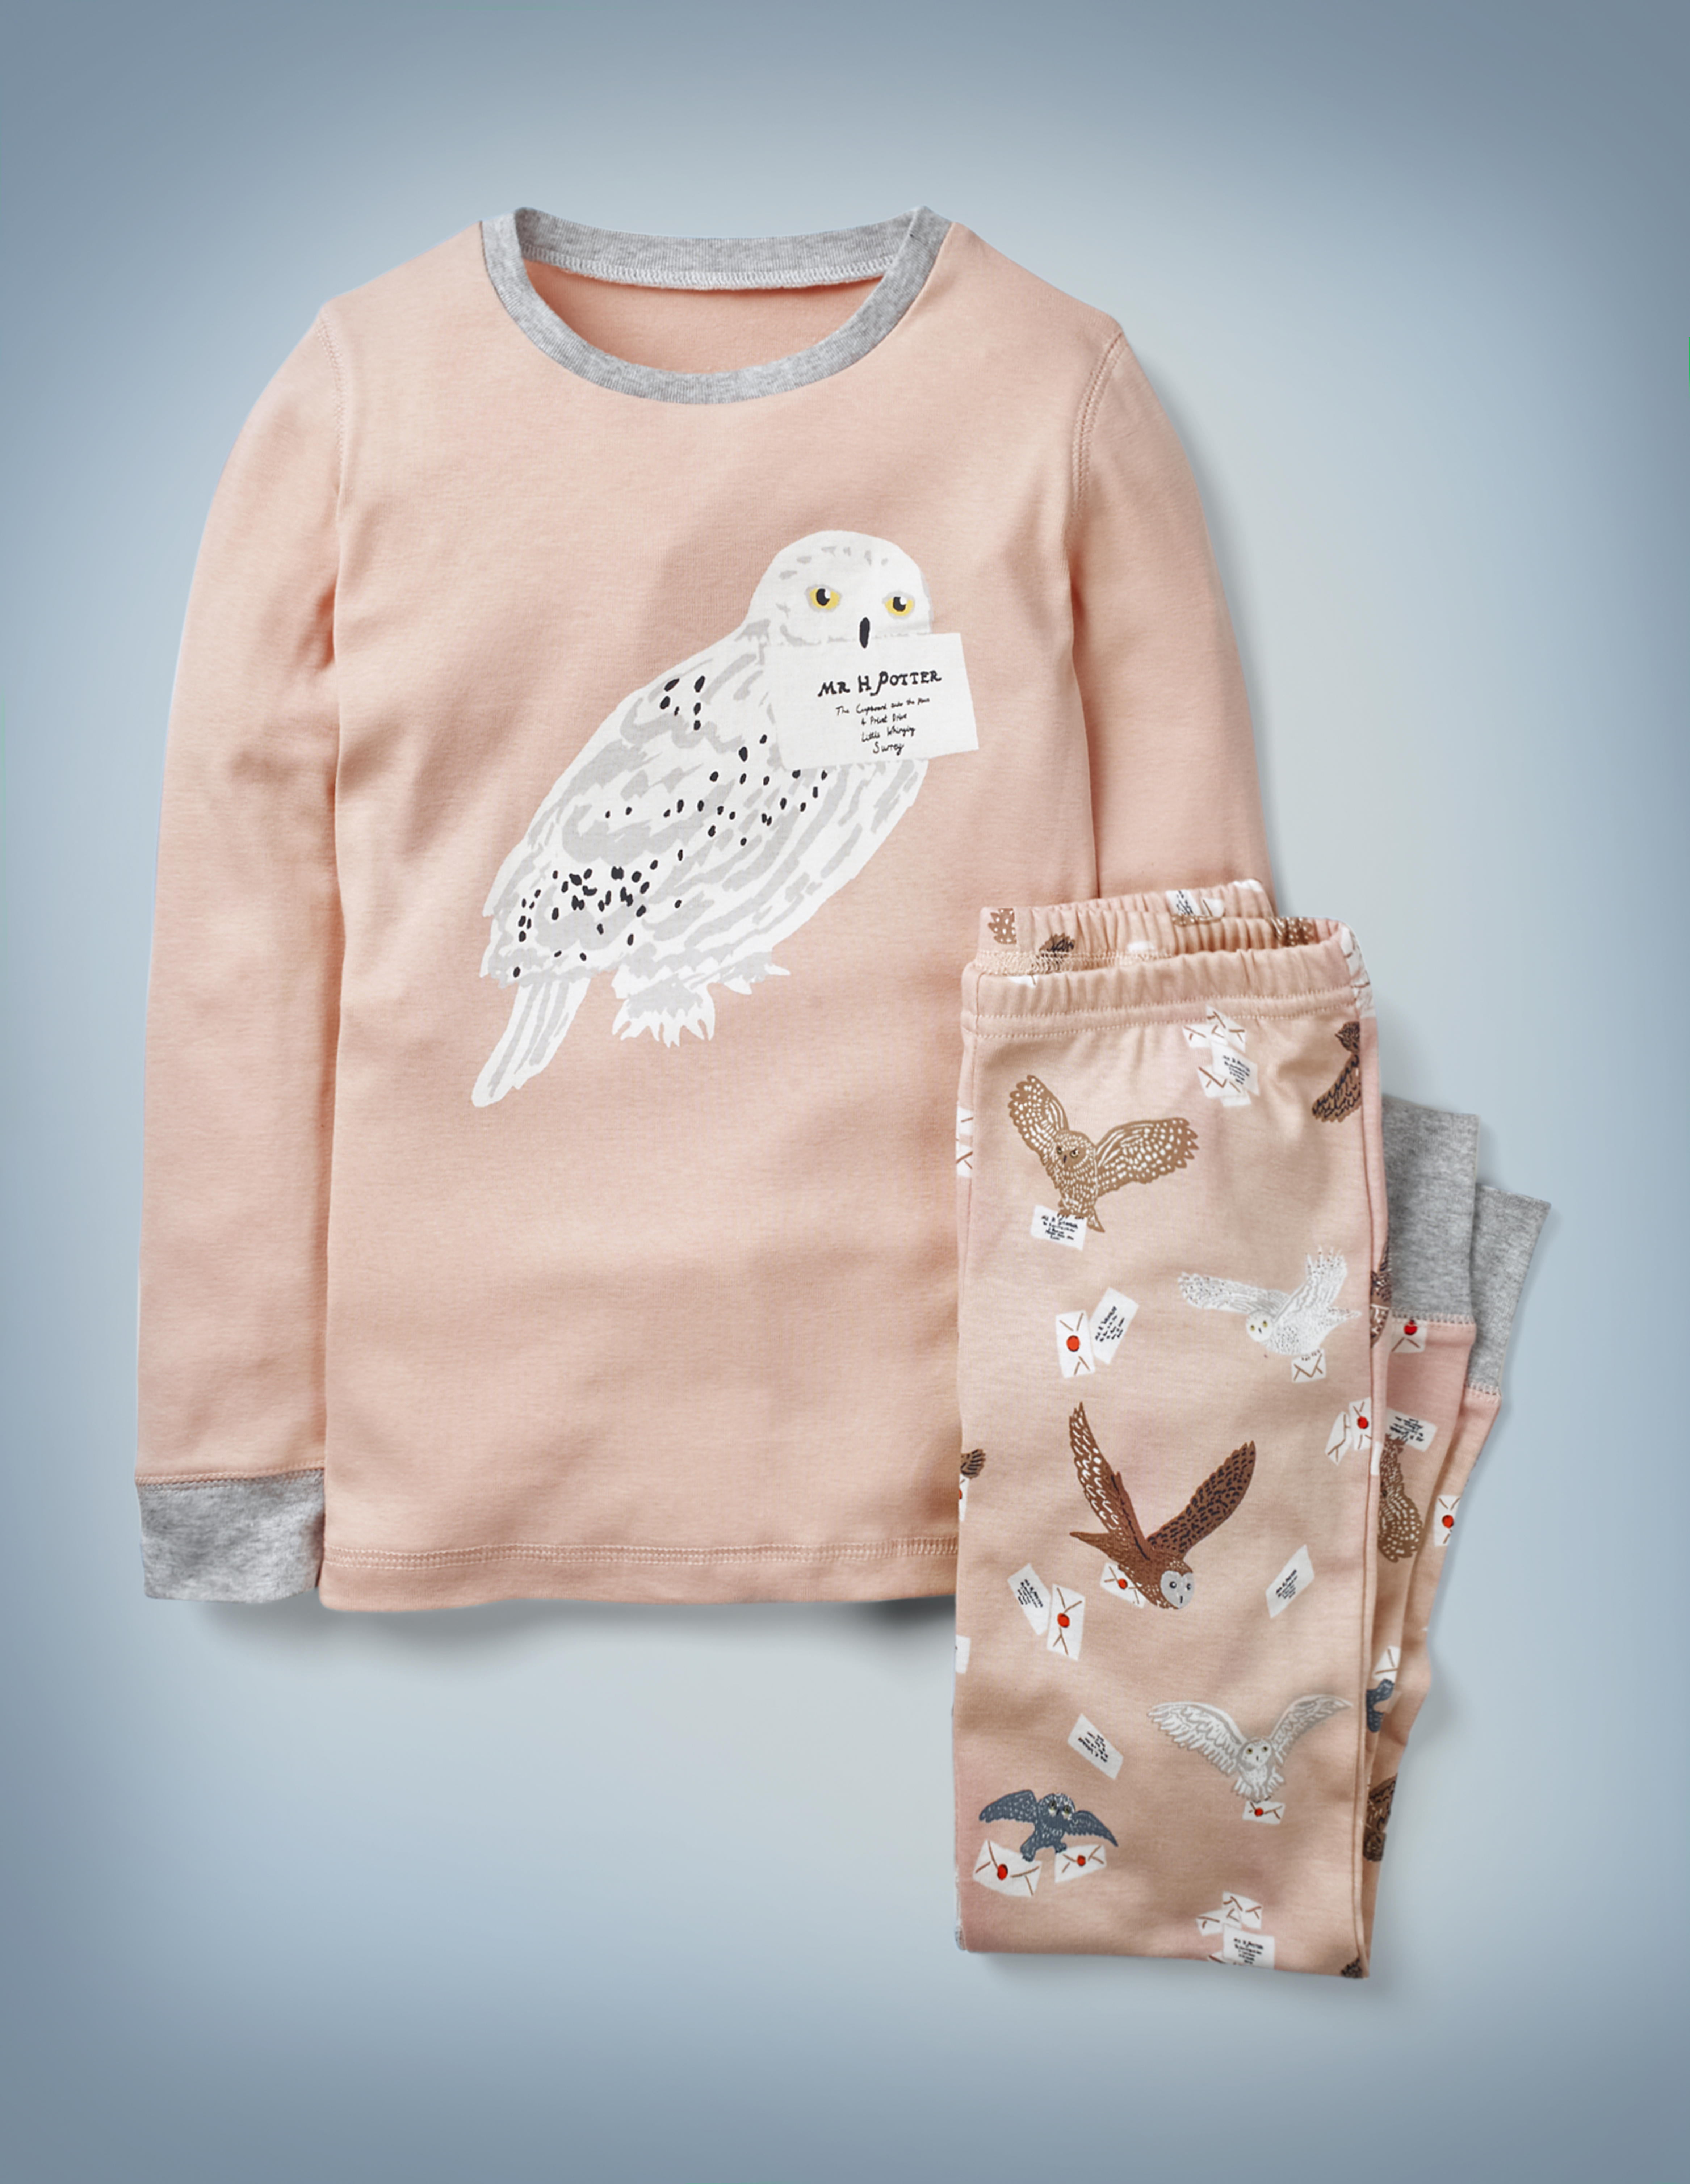 The Mini Boden Harry Potter Long John Pyjamas in pink feature all-over images of owls delivering Hogwarts acceptance letters on the pants and a large central image of Hedwig with Harry Potter's acceptance letter in her beak on the long-sleeved top. The top-and-bottom set retails at £24.